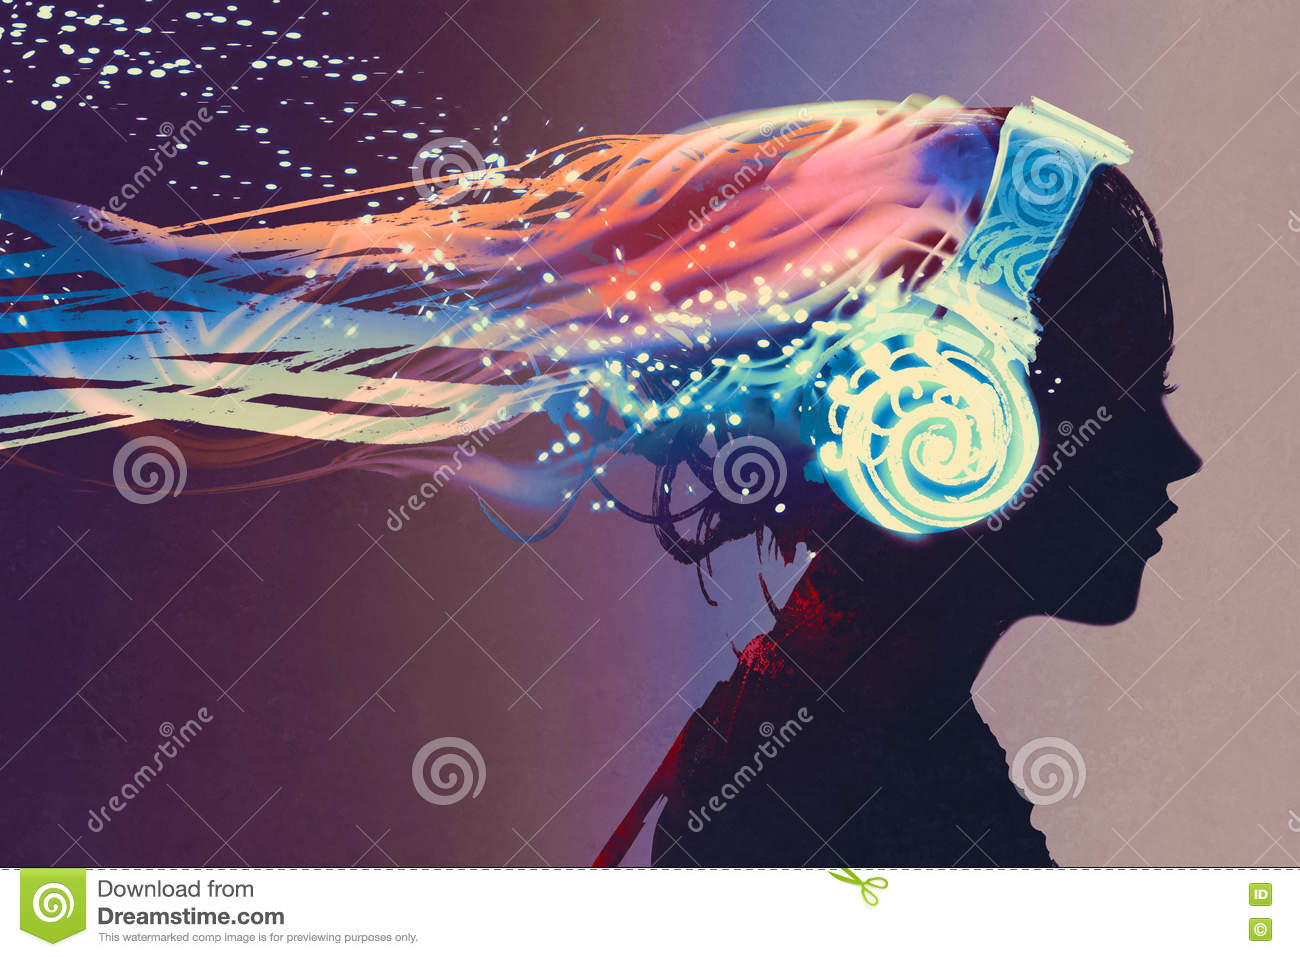 Woman with magic glowing headphones on dark background